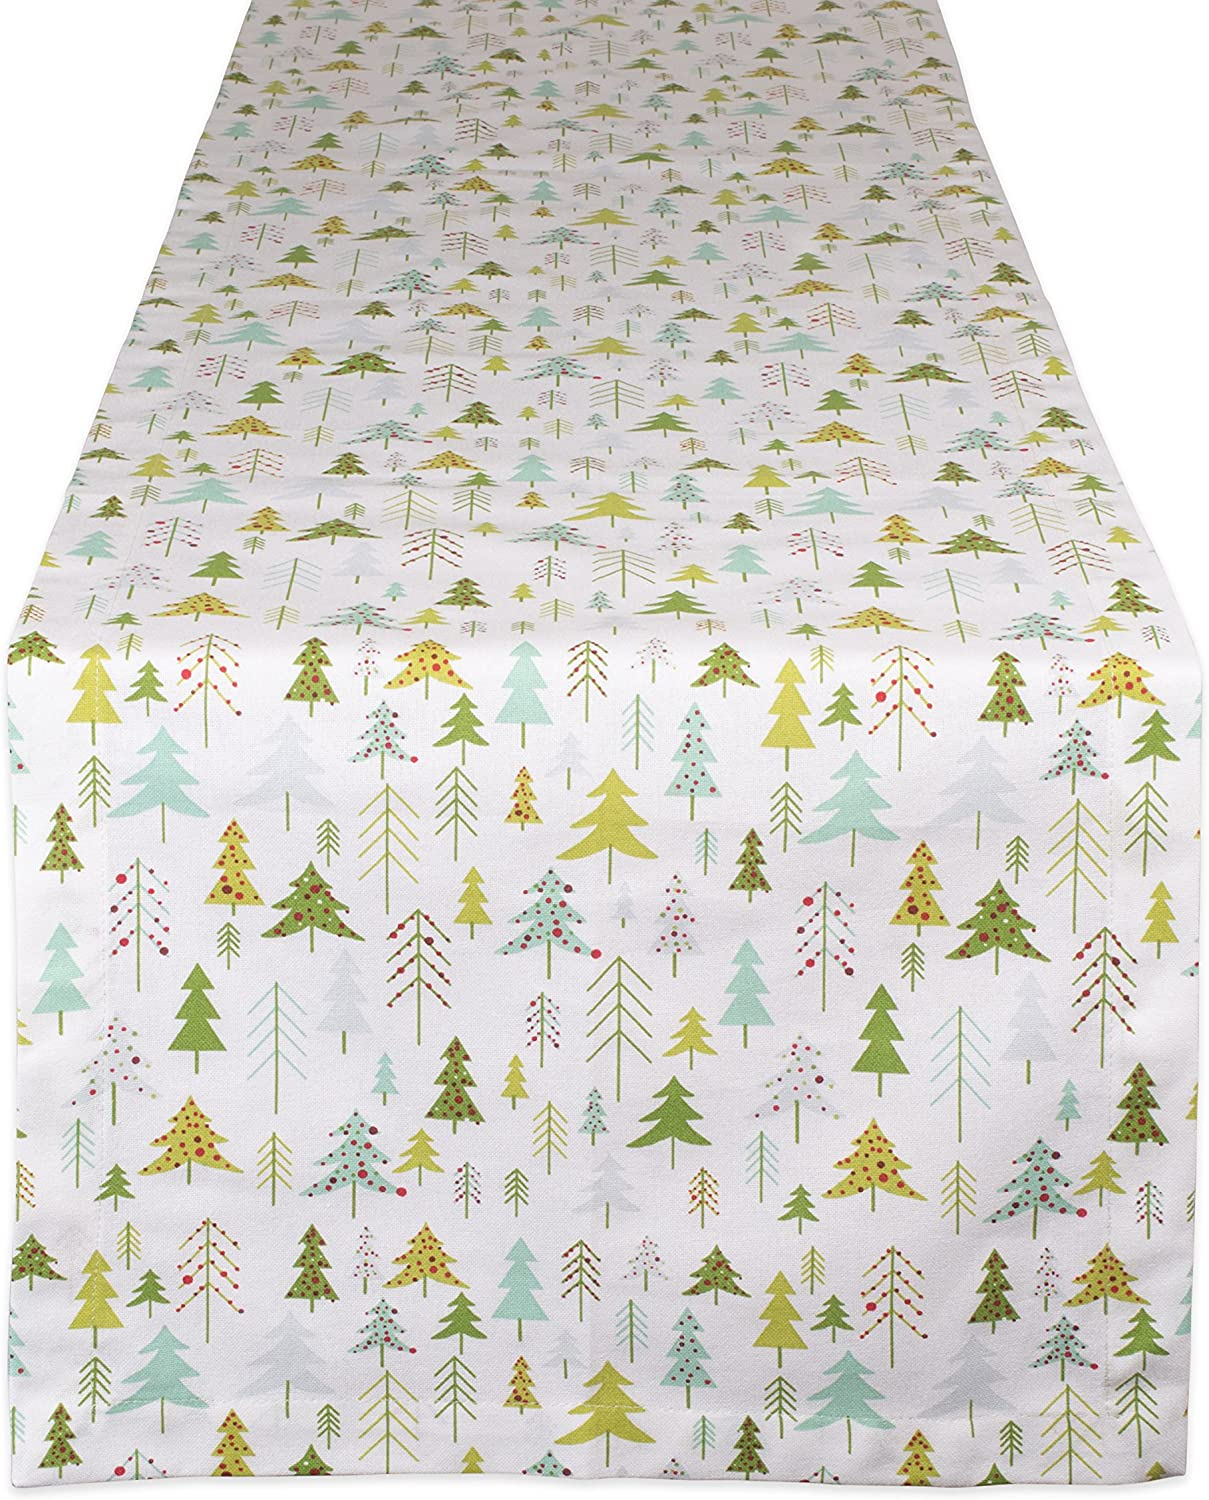 DII CAMZ10878 Table Runner, 14x108, Holiday Woods